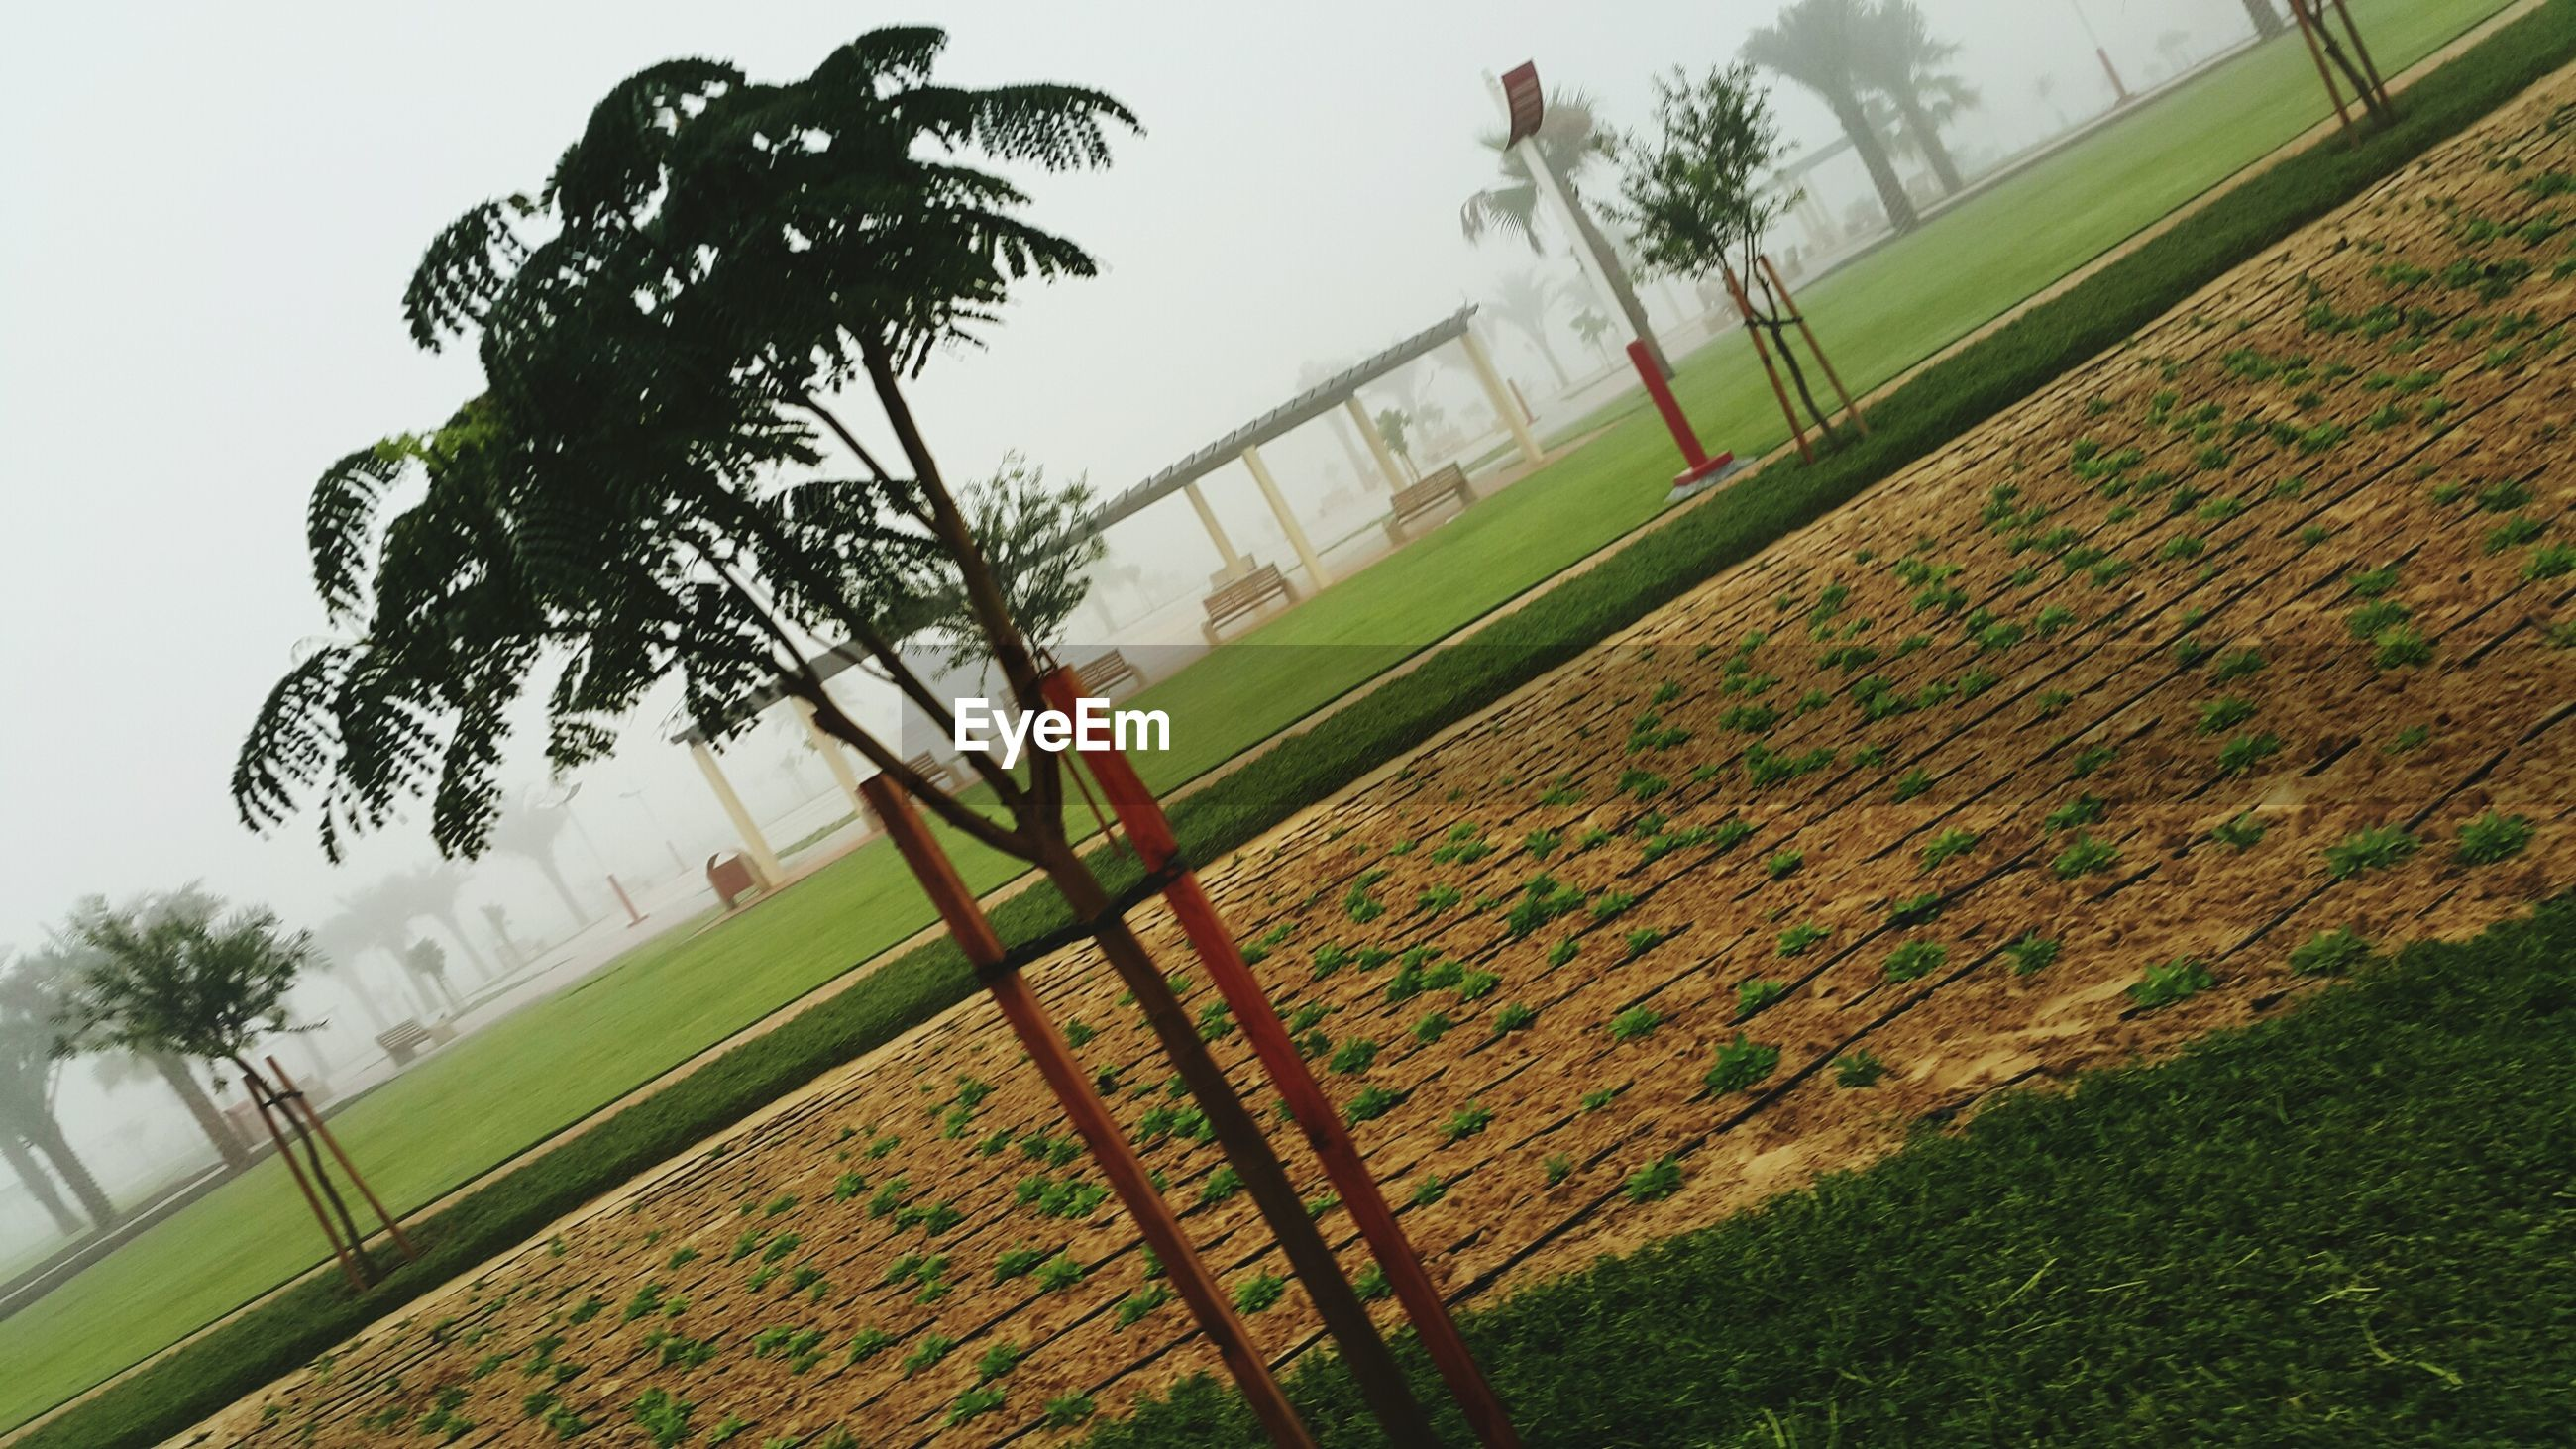 tree, growth, grass, nature, field, beauty in nature, sky, sport, day, no people, green color, outdoors, agriculture